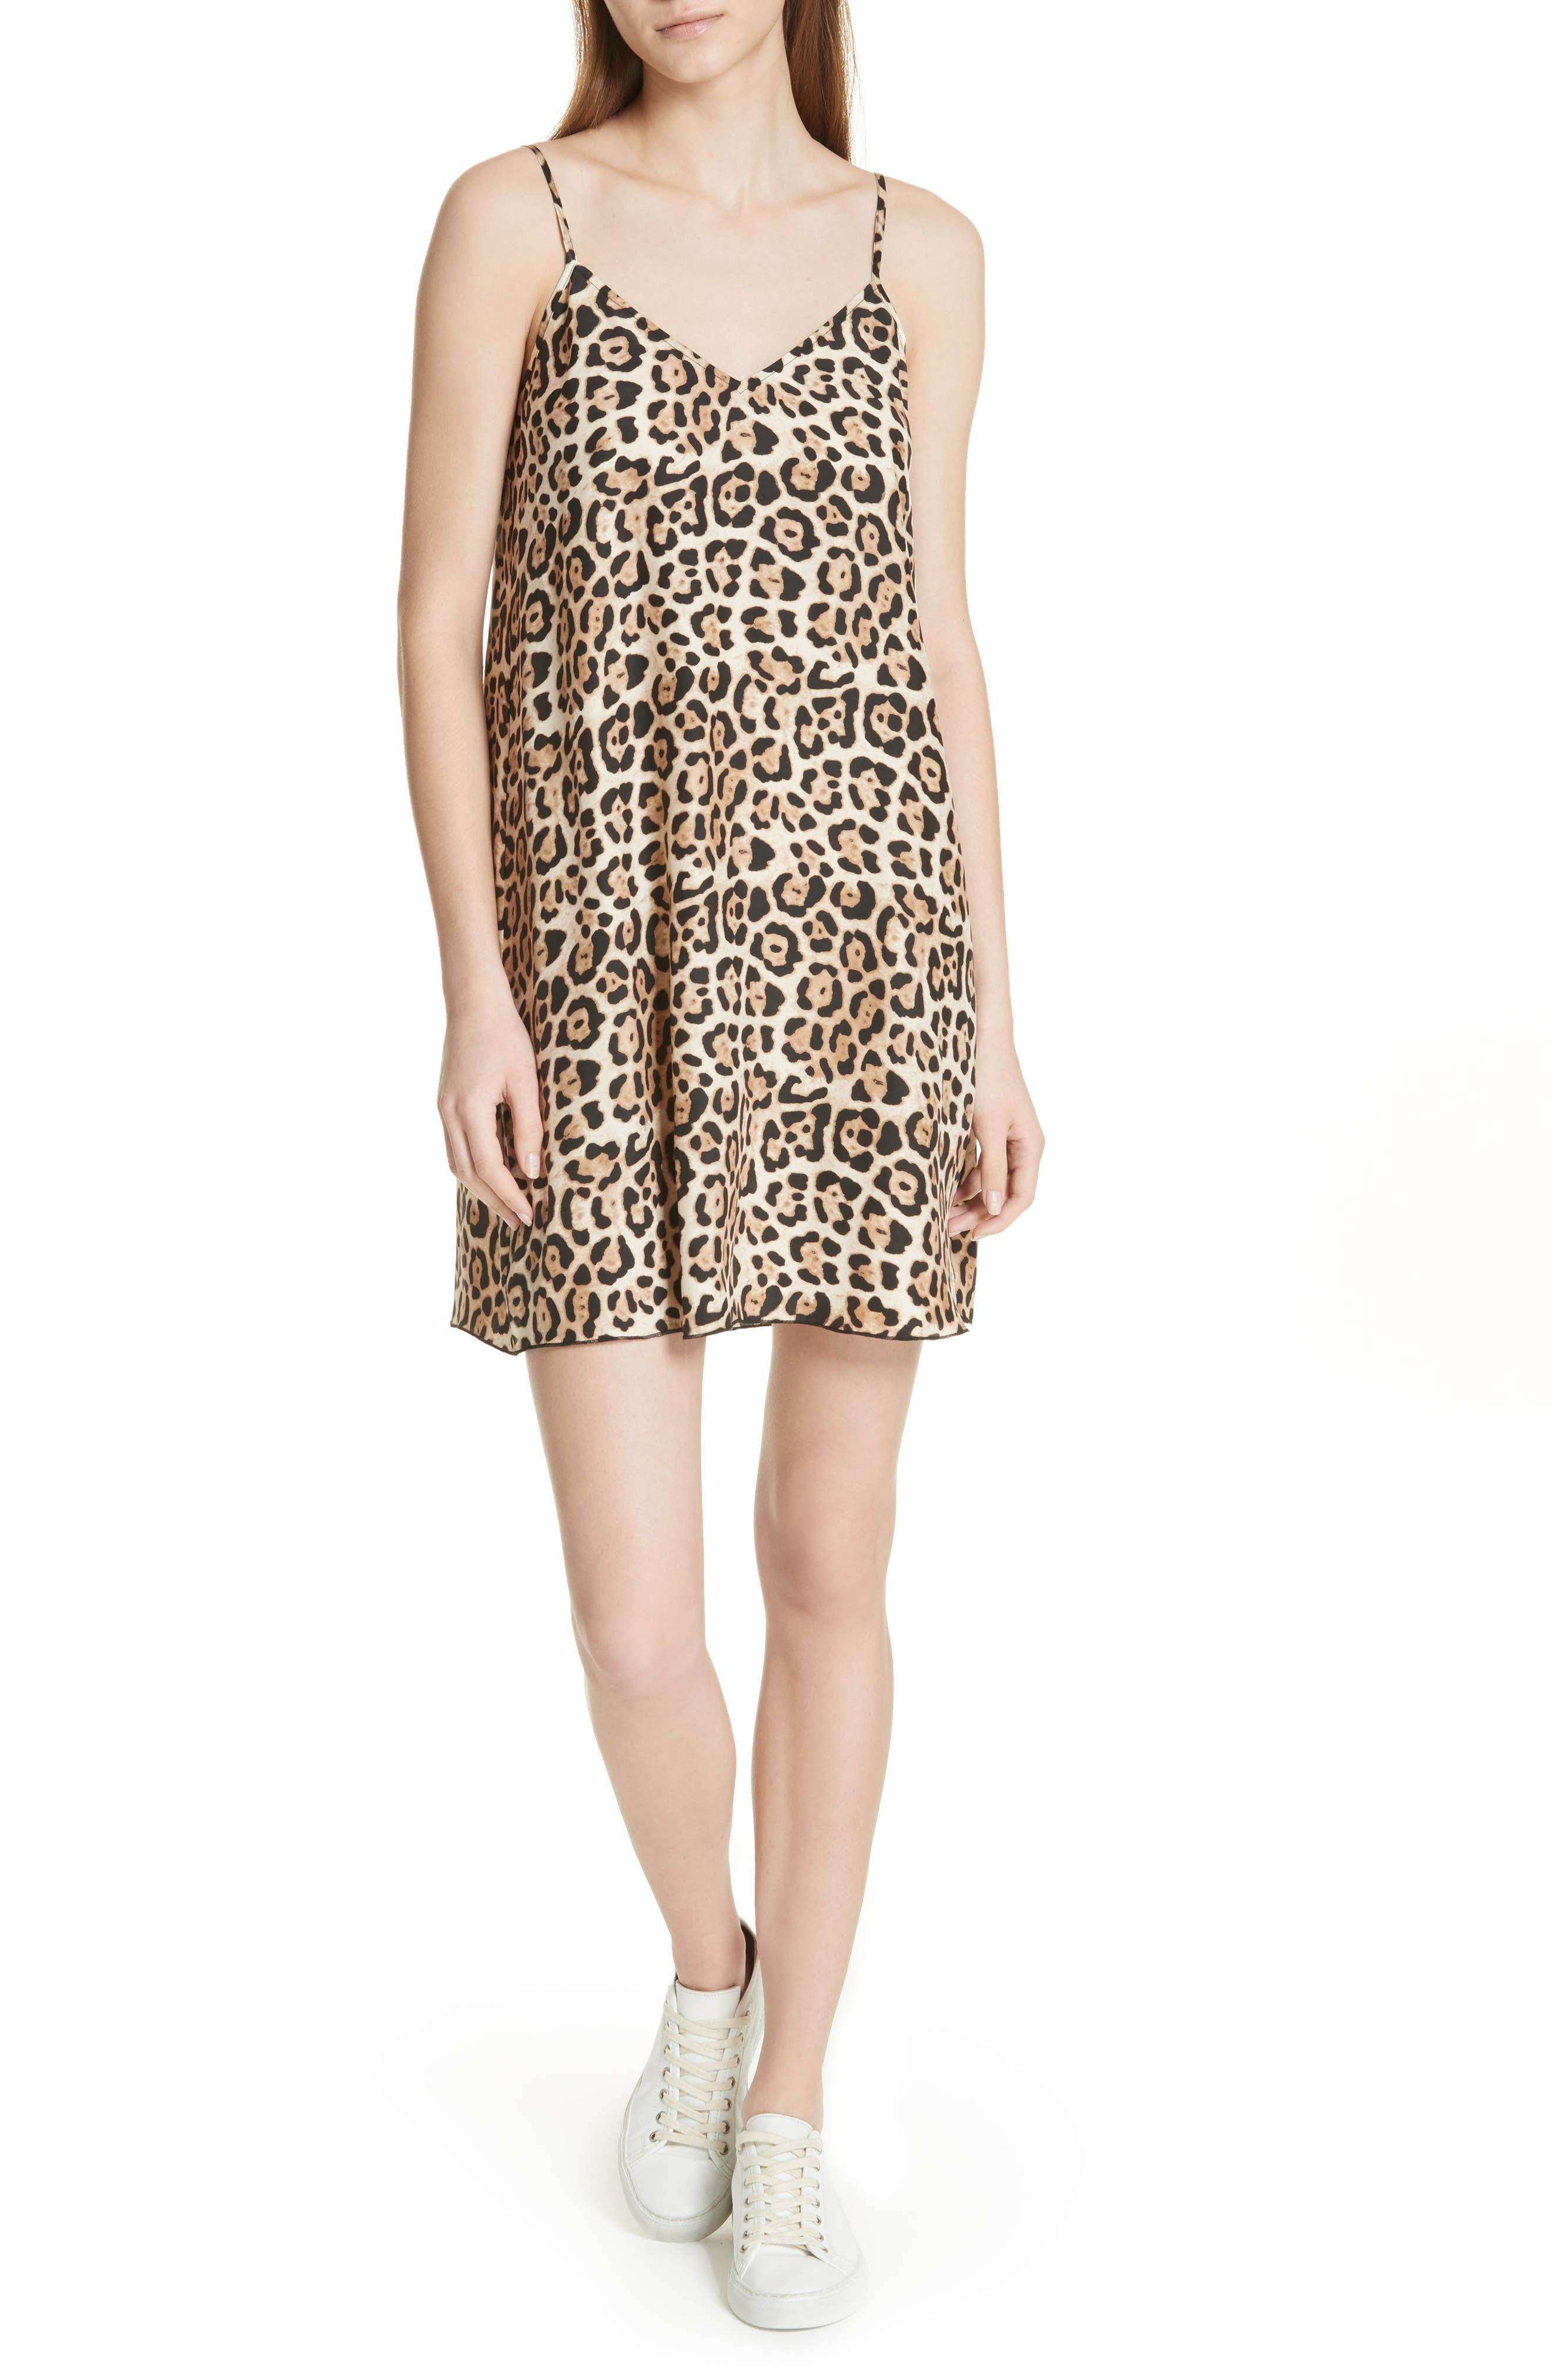 Atm Anthony Thomas Melillo Leopard Print Silk Slipdress, Brown